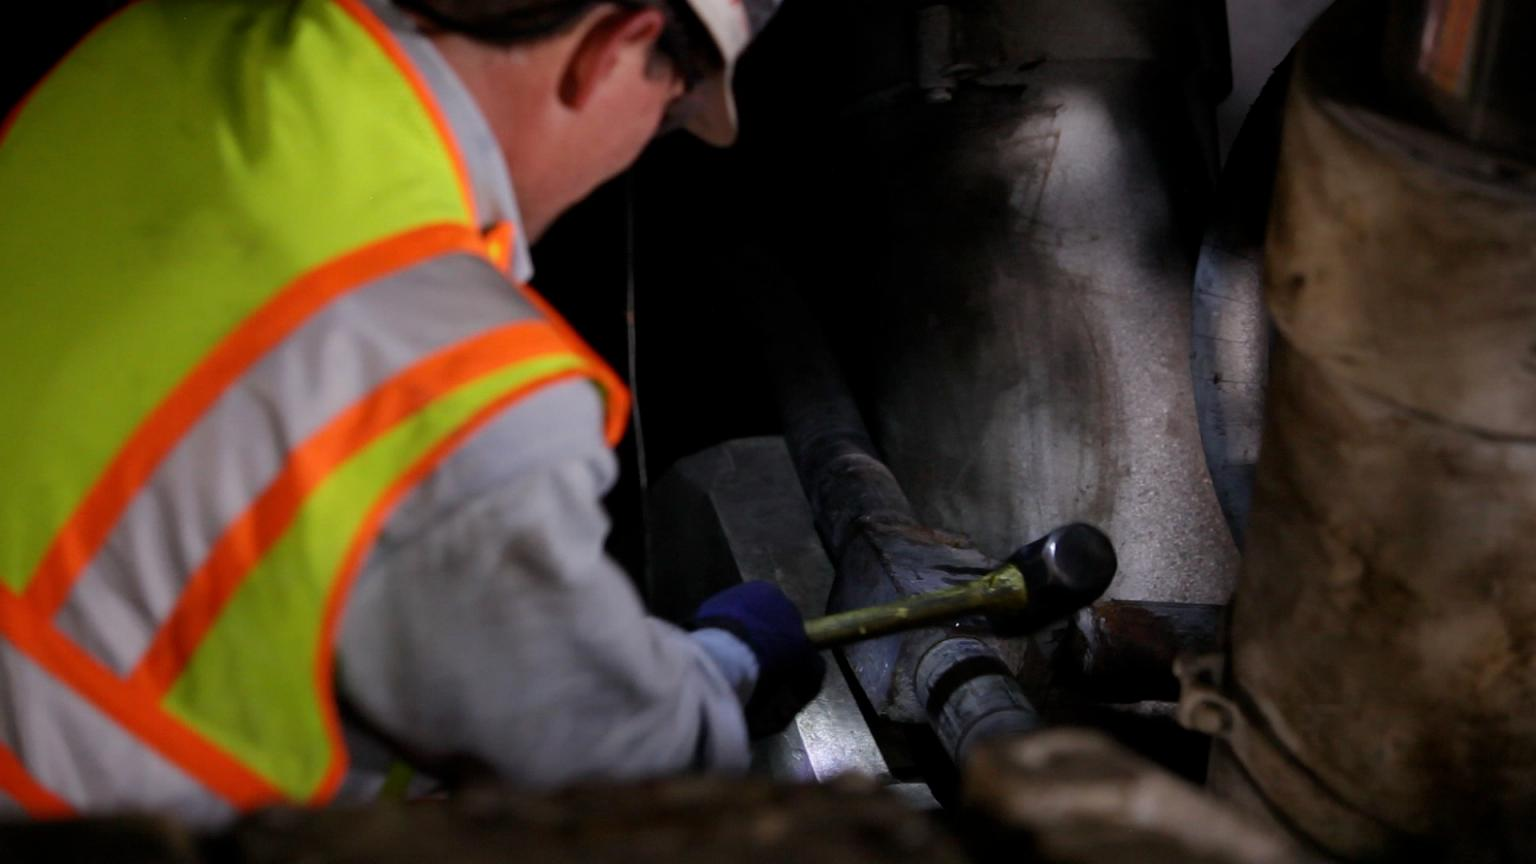 Workers often resort to dangerous practices to free corroded and deformed couplings